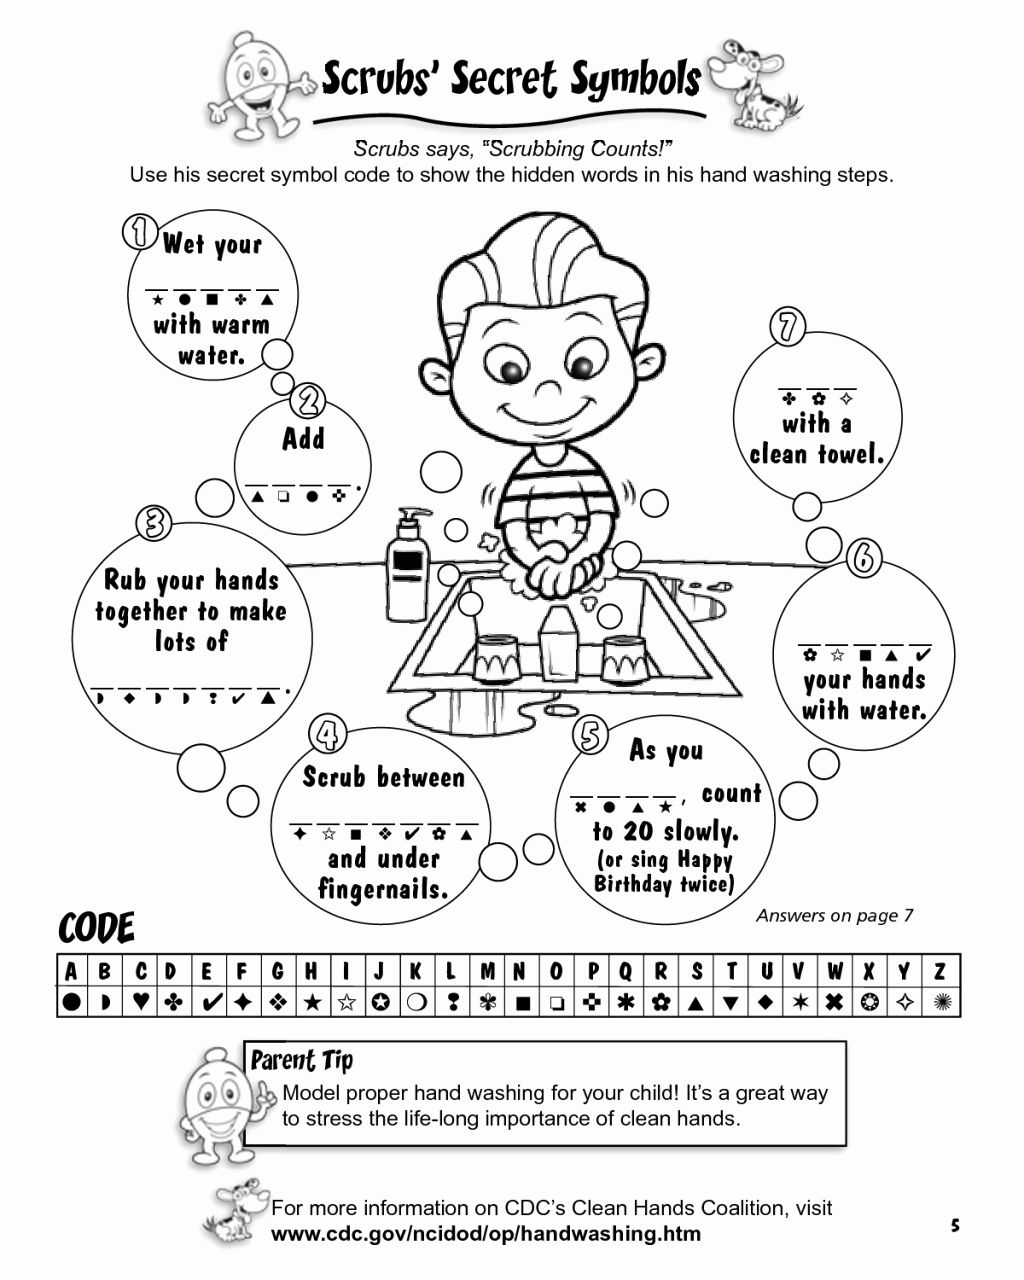 Passover Coloring Pages Free Printable Inspirational Coloring Sheet Hand Hygiene Colouring Pages Germs Color Activities Coloring Pages For Kids Coloring Pages [ 1280 x 1024 Pixel ]